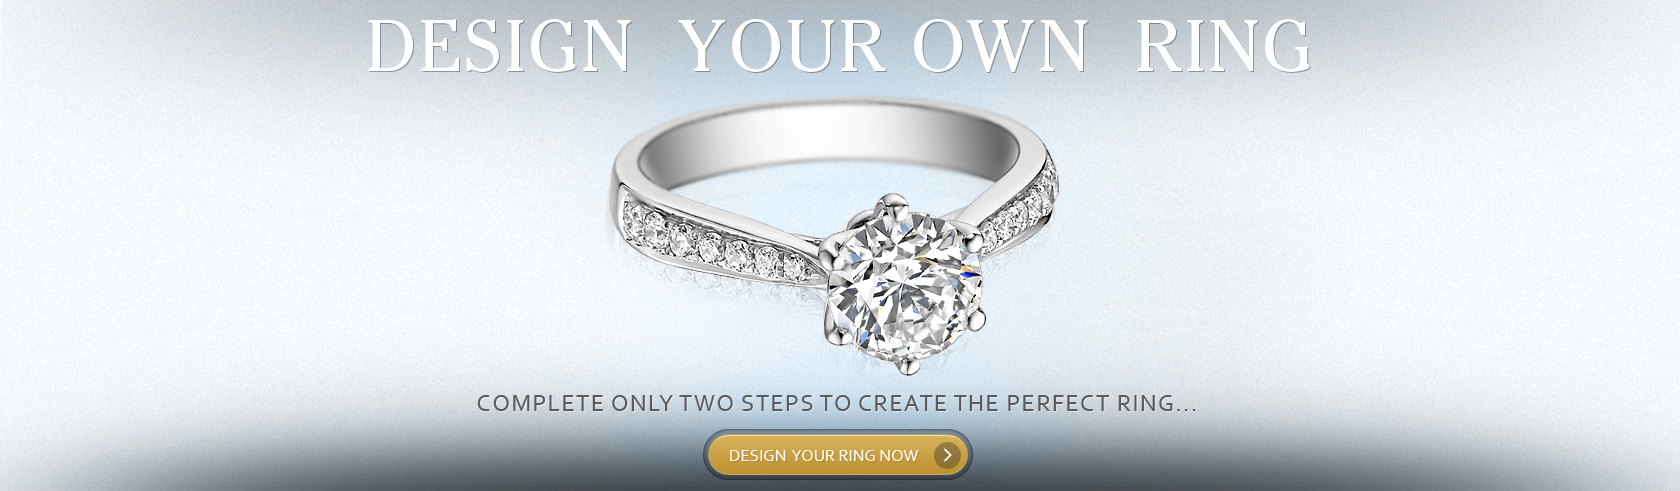 of men engagement own size ring your with inspirations mendesign gemstonesdesign unusual full design pictures jewellery for fromtchdesign online